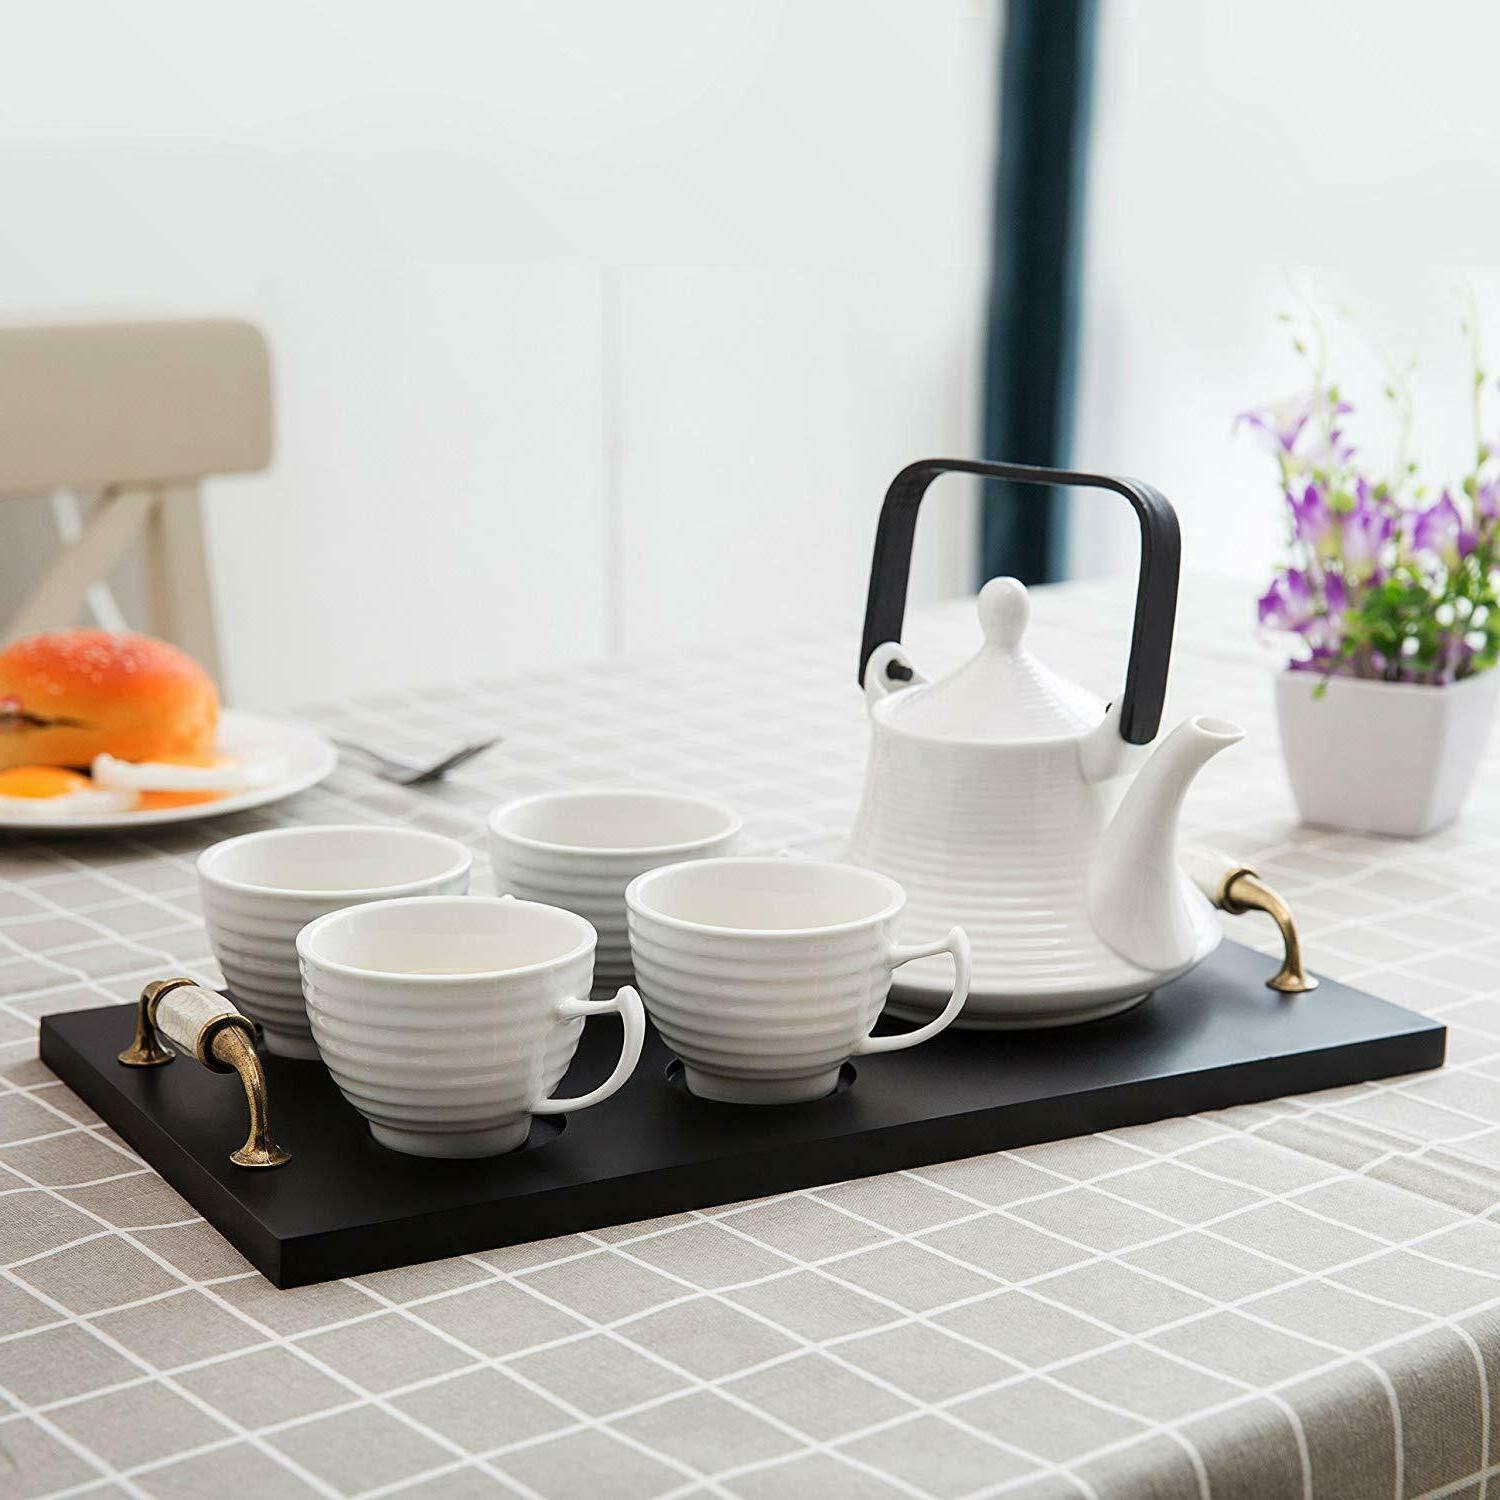 Classic Ribbed Ceramic Tea Serving Tray, & Teacups